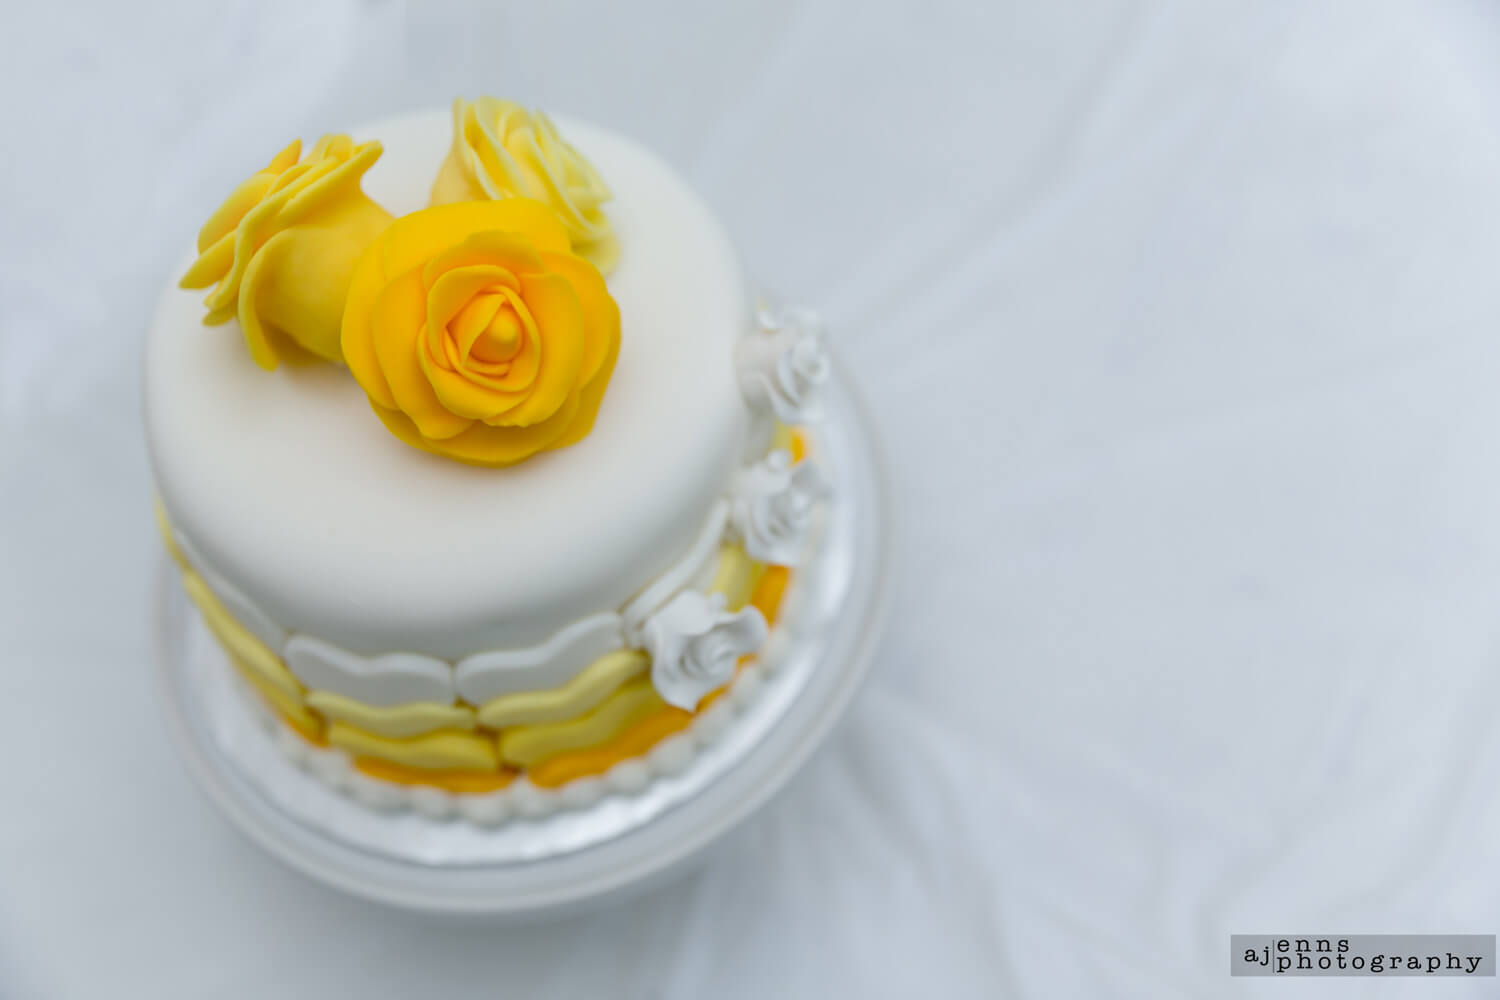 Top view of the 3 shades of yellow wedding cake